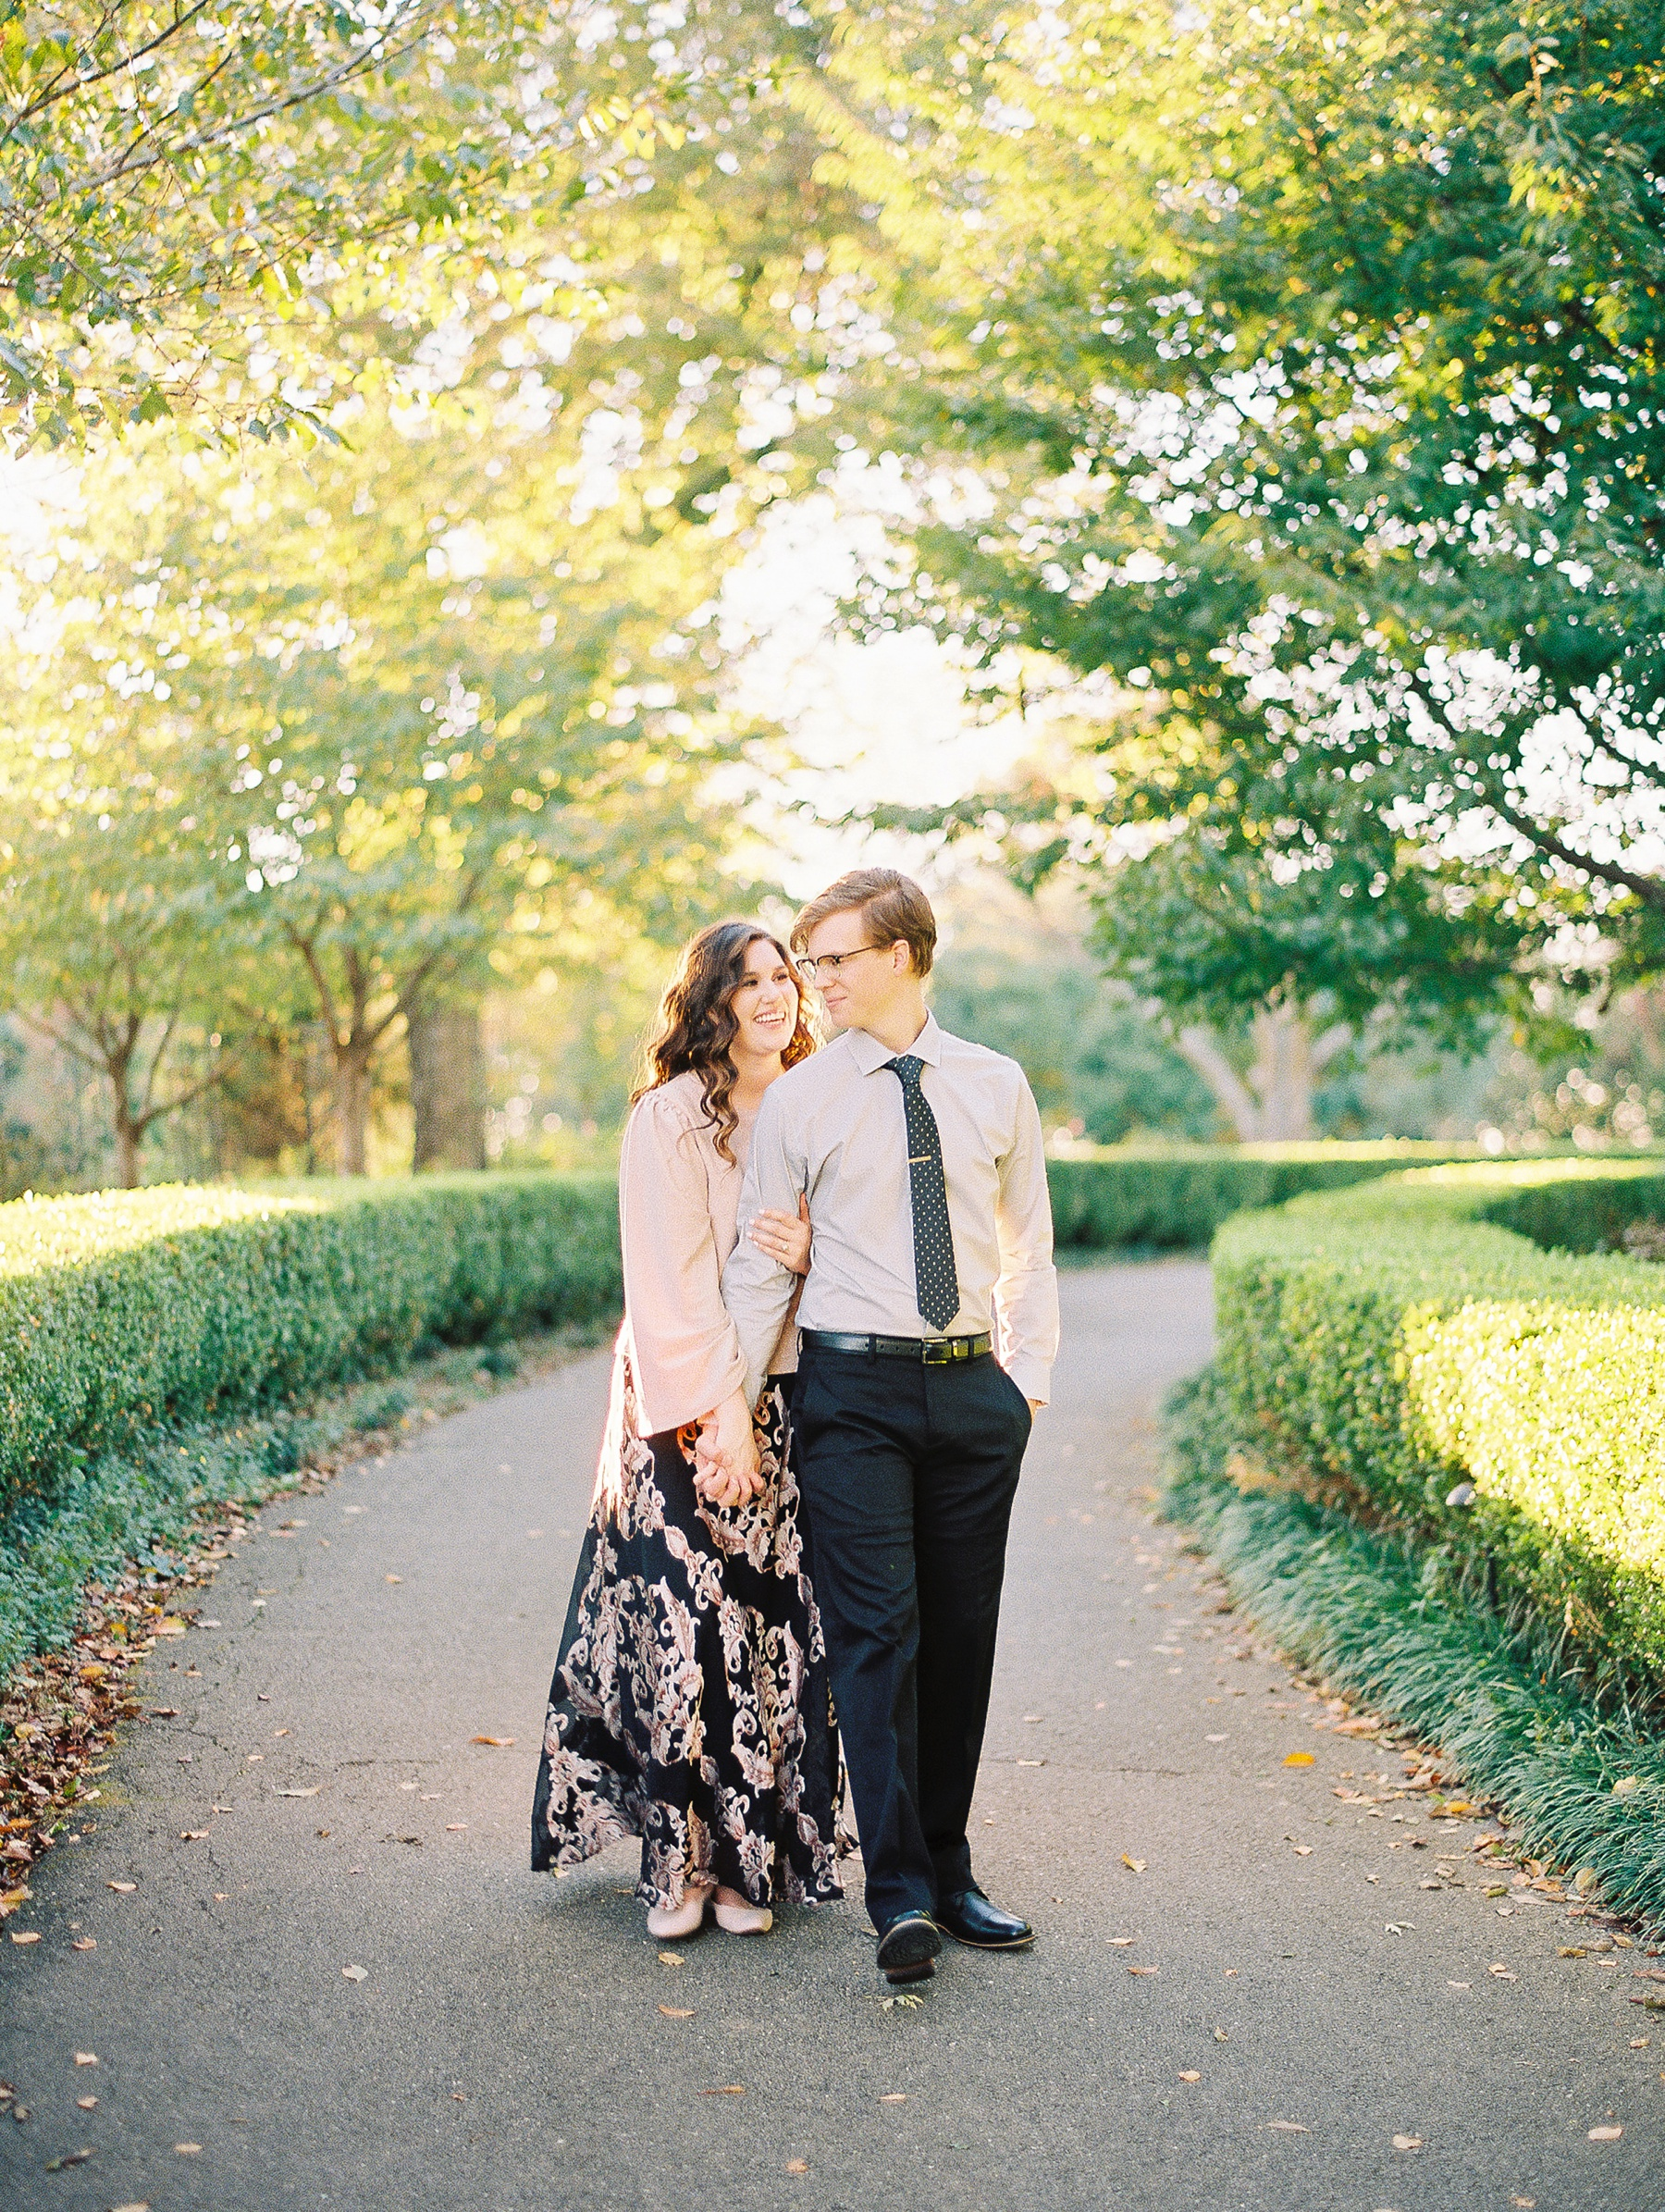 Haseltine Estate Wedding Springfield Missouri Photographer_0892.jpg